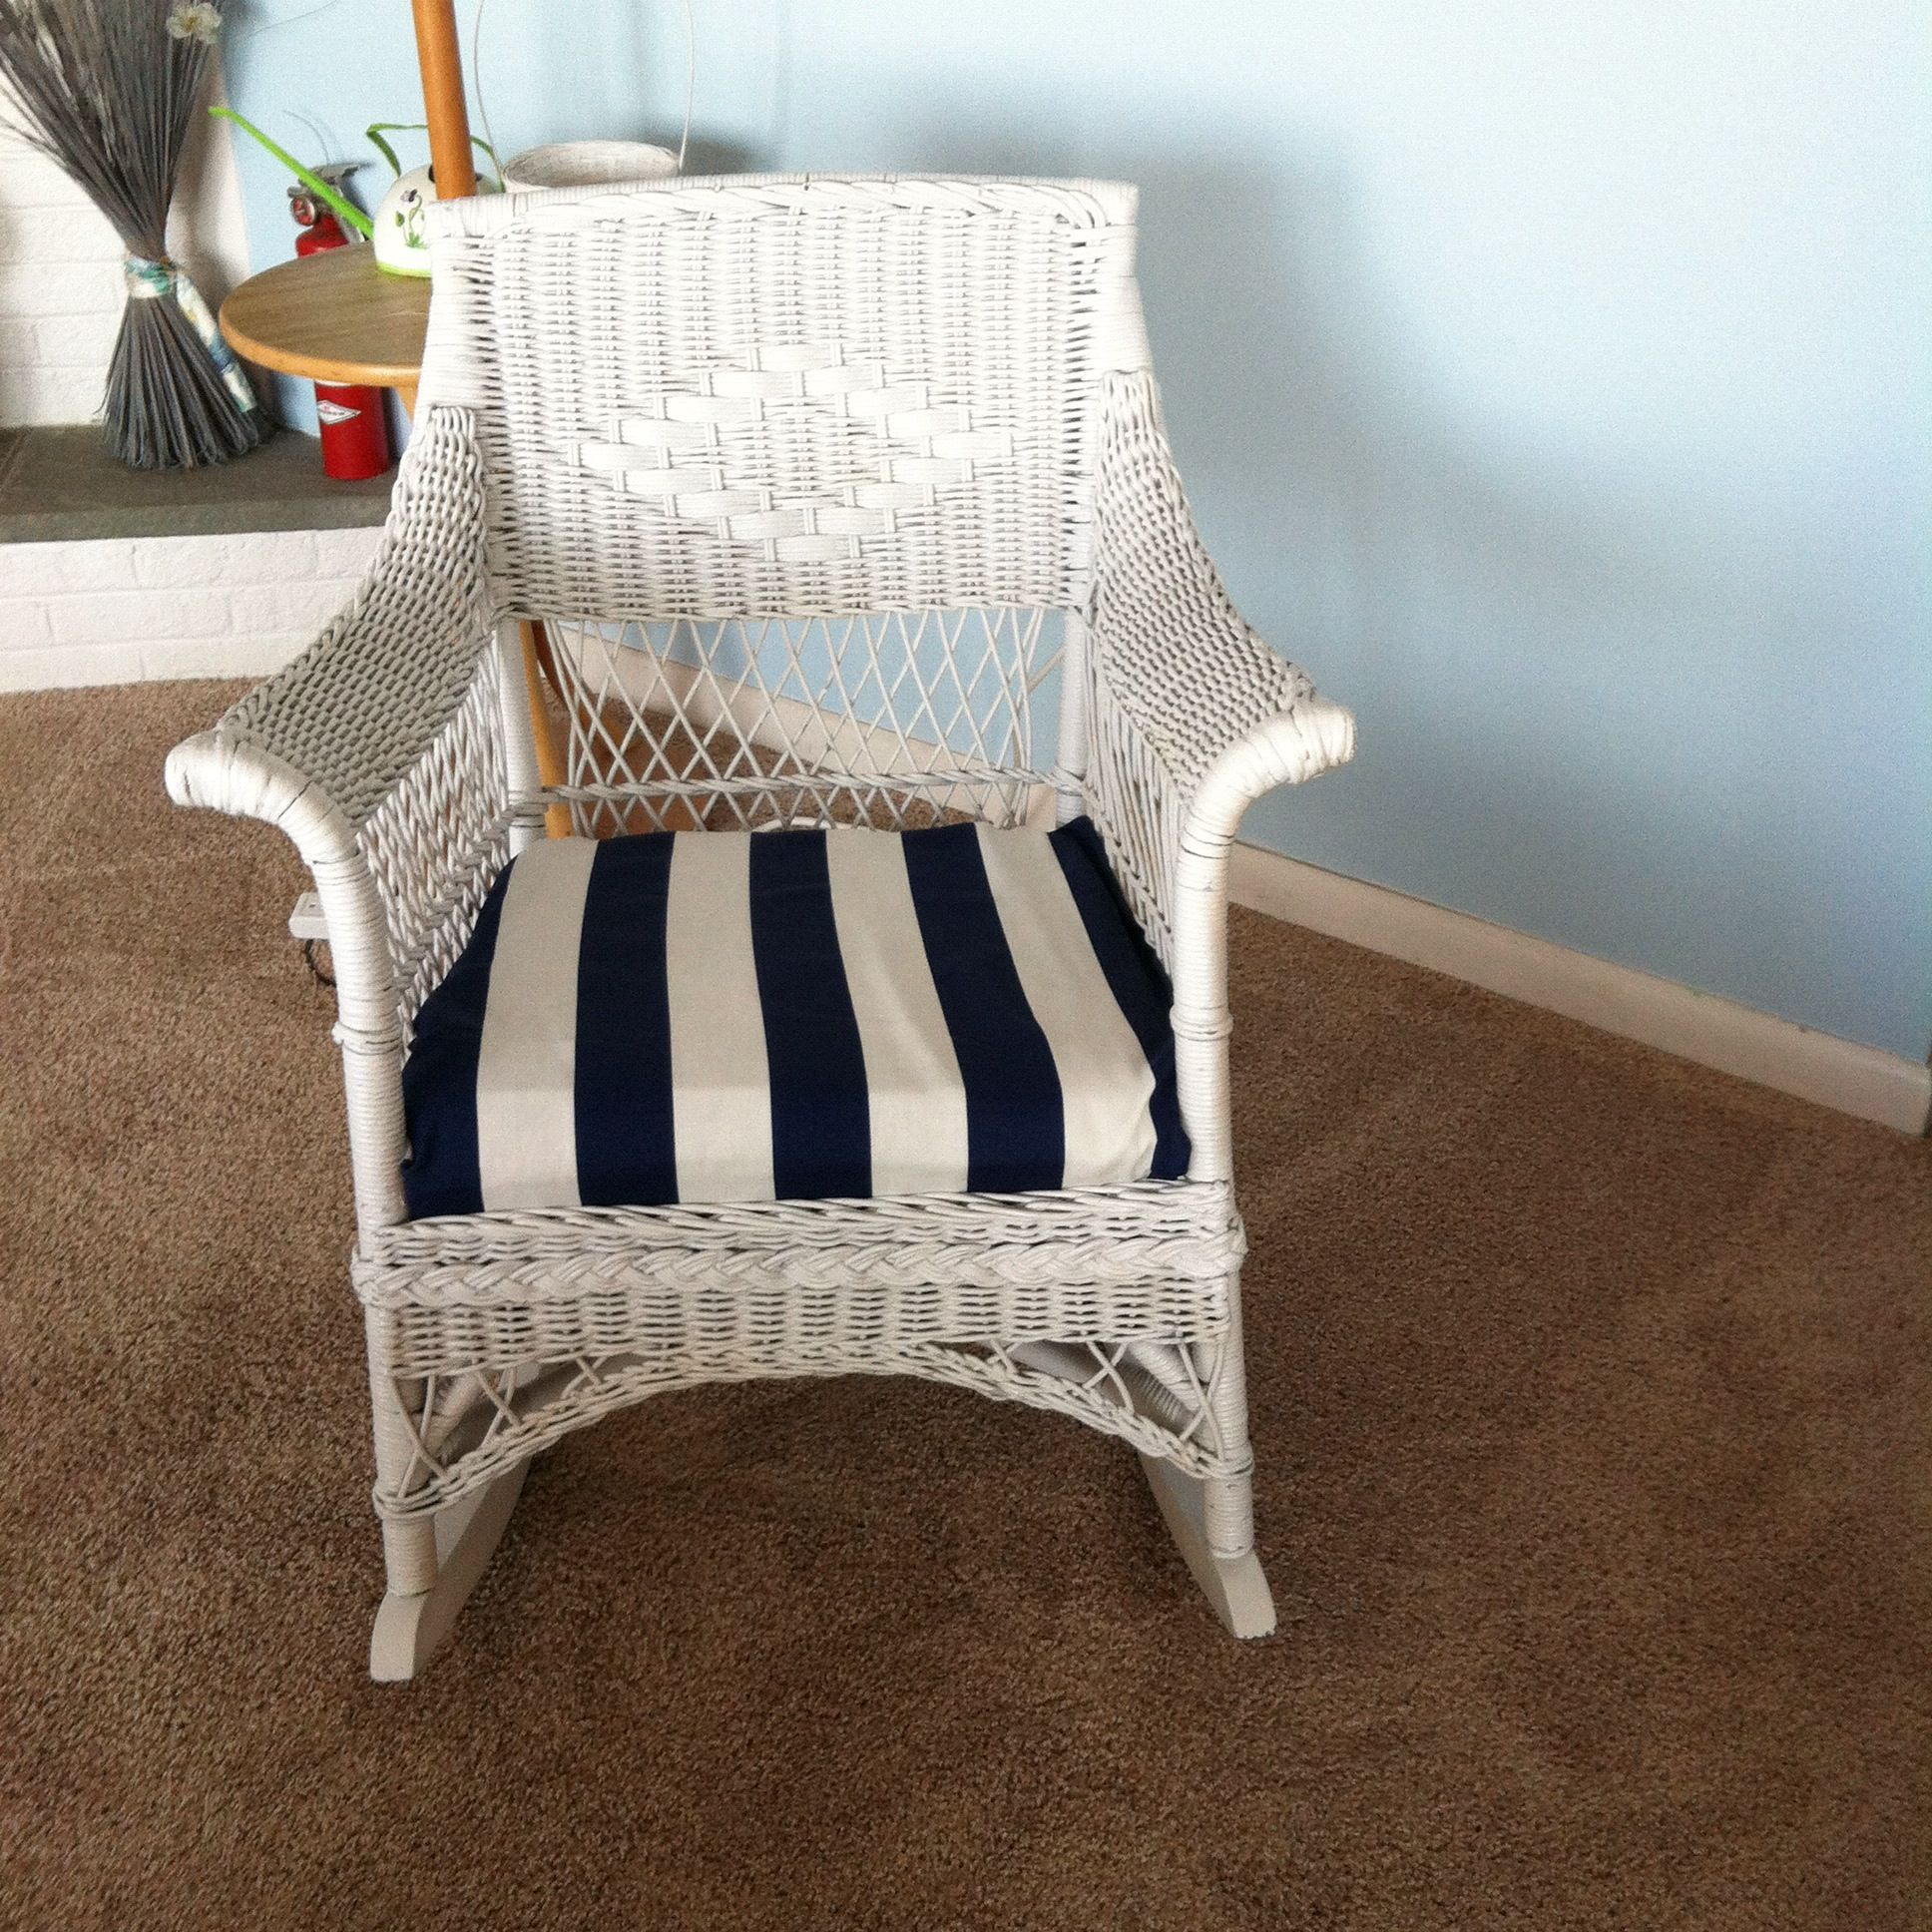 wicker chairs sunroom indoor outdoor painted furniture navy blue